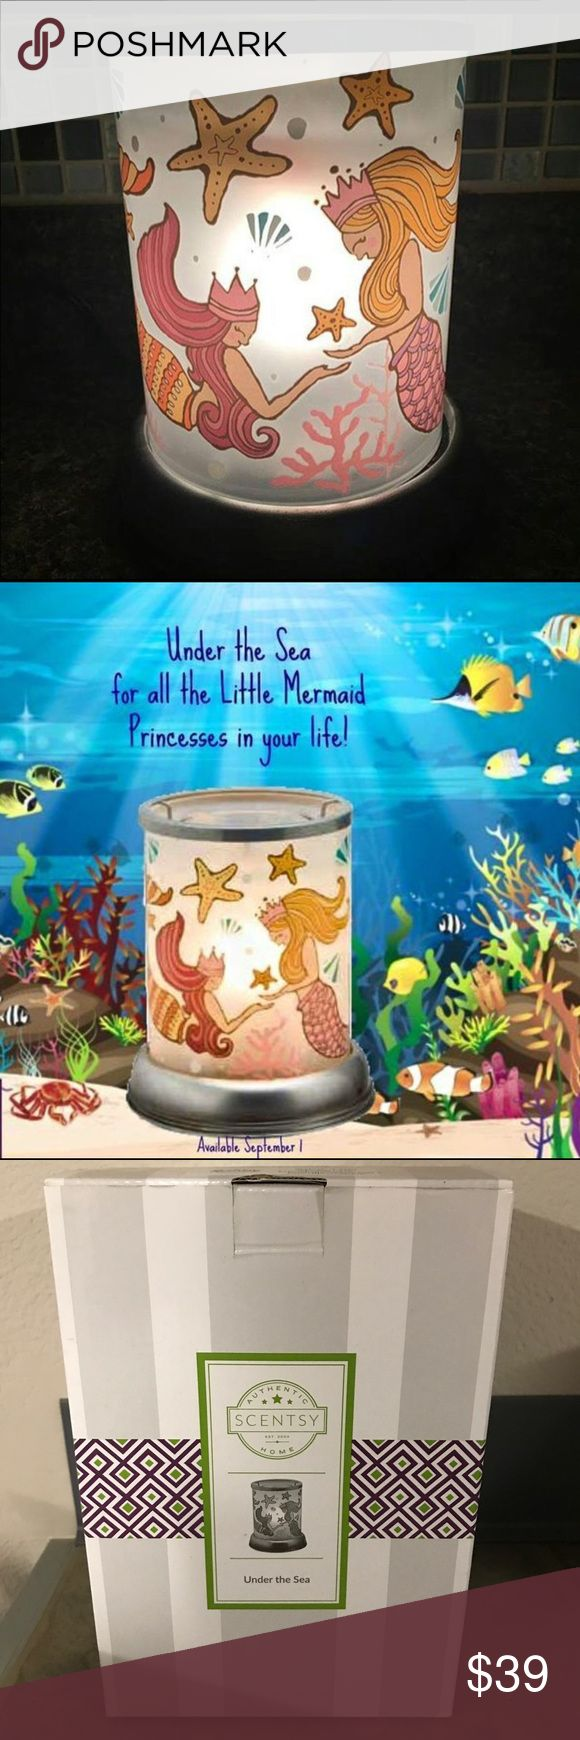 Scentsy under the sea mermaid candle wax warmer With a flip of her tail your little one will join the adventures all the mermaids are sharing when Scentsy's Under The Sea Warmer finds a home in bed or play room.  **wax not included scentsy Accessories